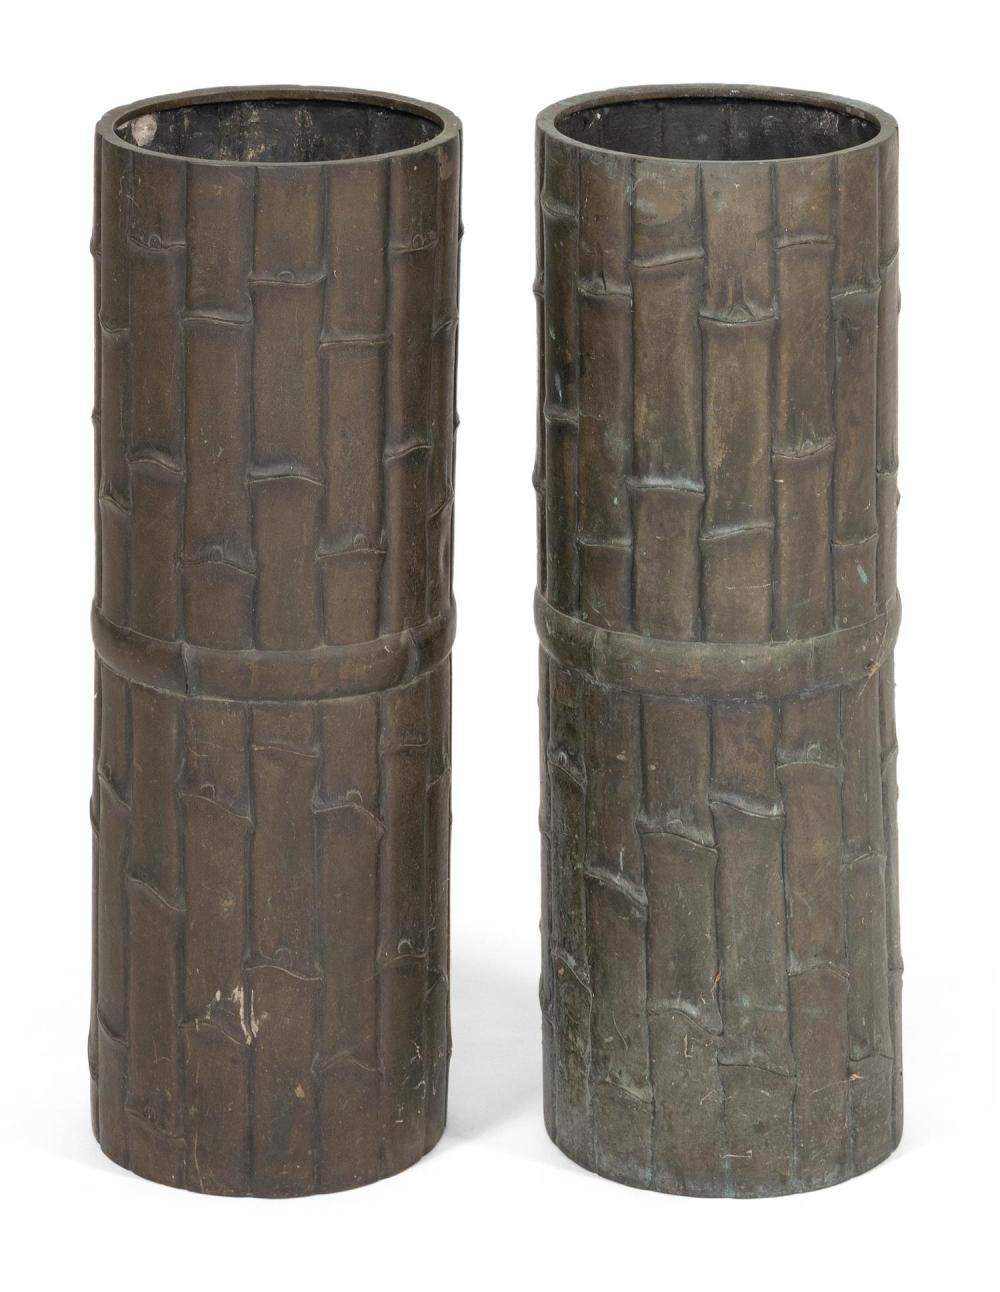 """PAIR OF BRONZE UMBRELLA STANDS IN THE FORM OF BAMBOO BUNDLES Together with a similar footed jardinière, height 10.5"""". Stands with so..."""